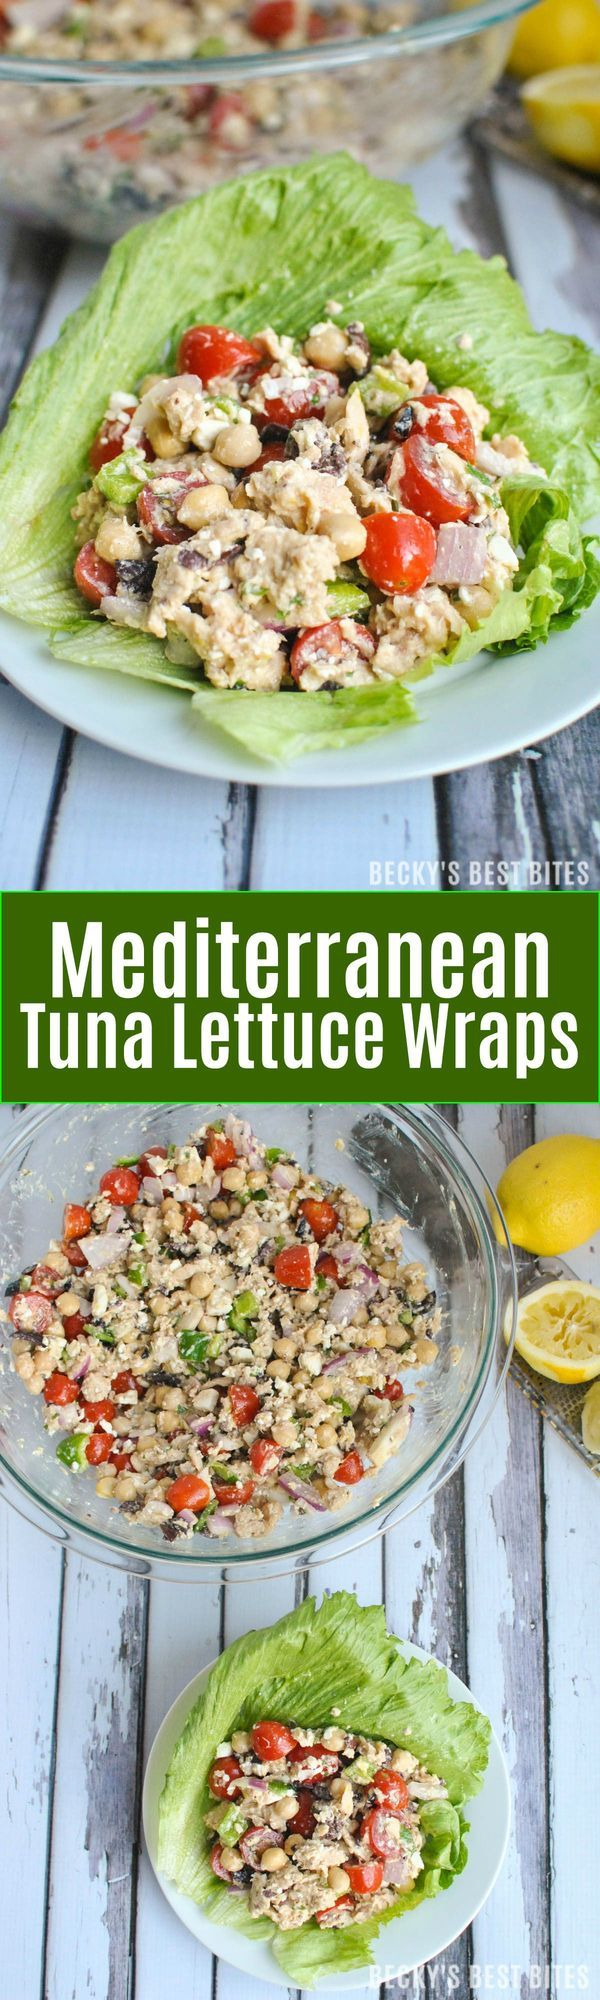 Mediterranean Tuna Lettuce Wraps are a simple, healthy, no-cook dinner idea. Recipe features chickpeas, olives, feta cheese, tomatoes in a dijon lemon vinaigrette. | beckysbestbites.com(Tuna Recipes)